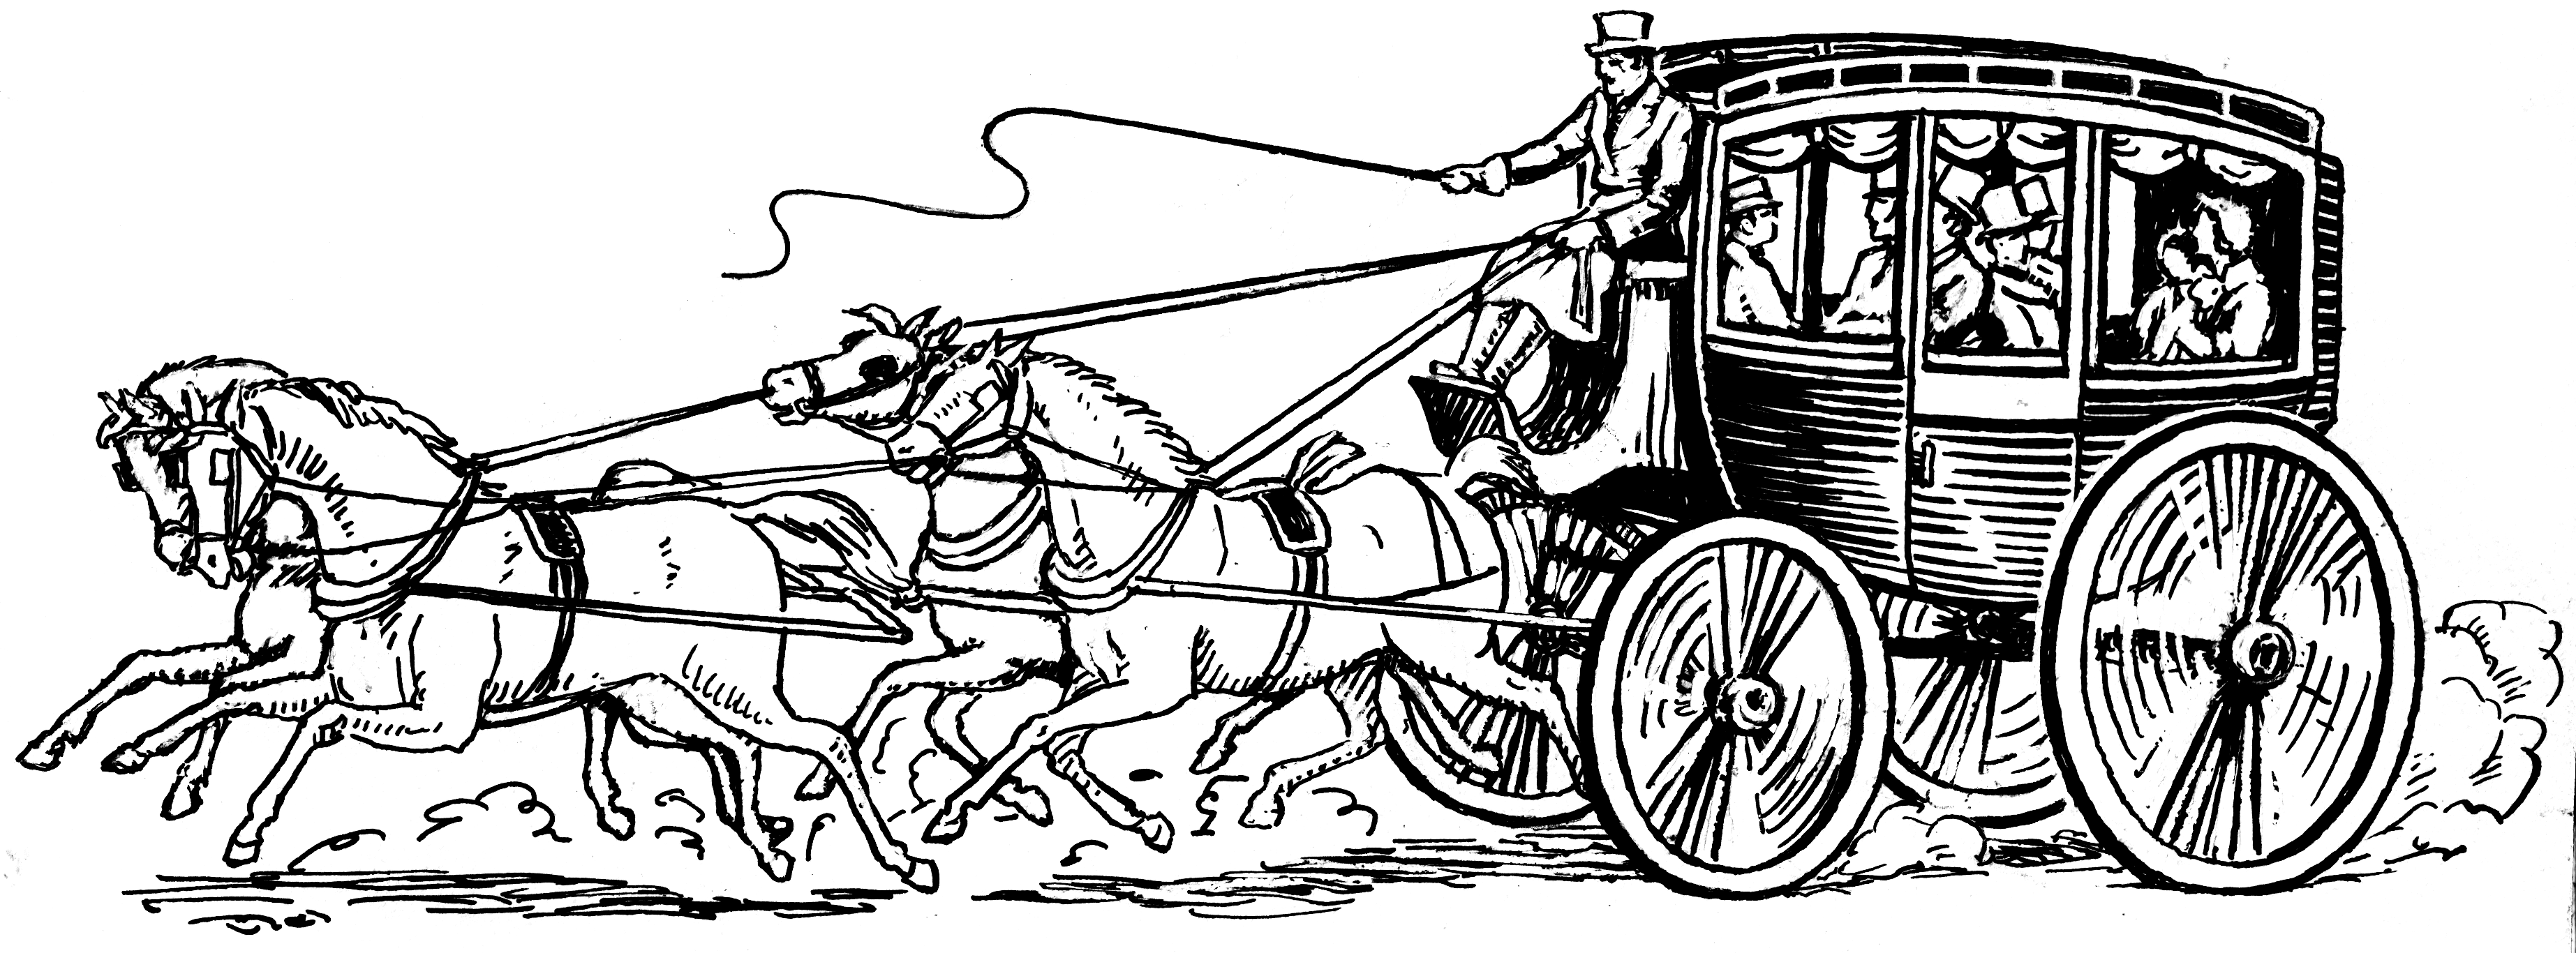 File stagecoach psf png wikimedia commons - Charrette dessin ...